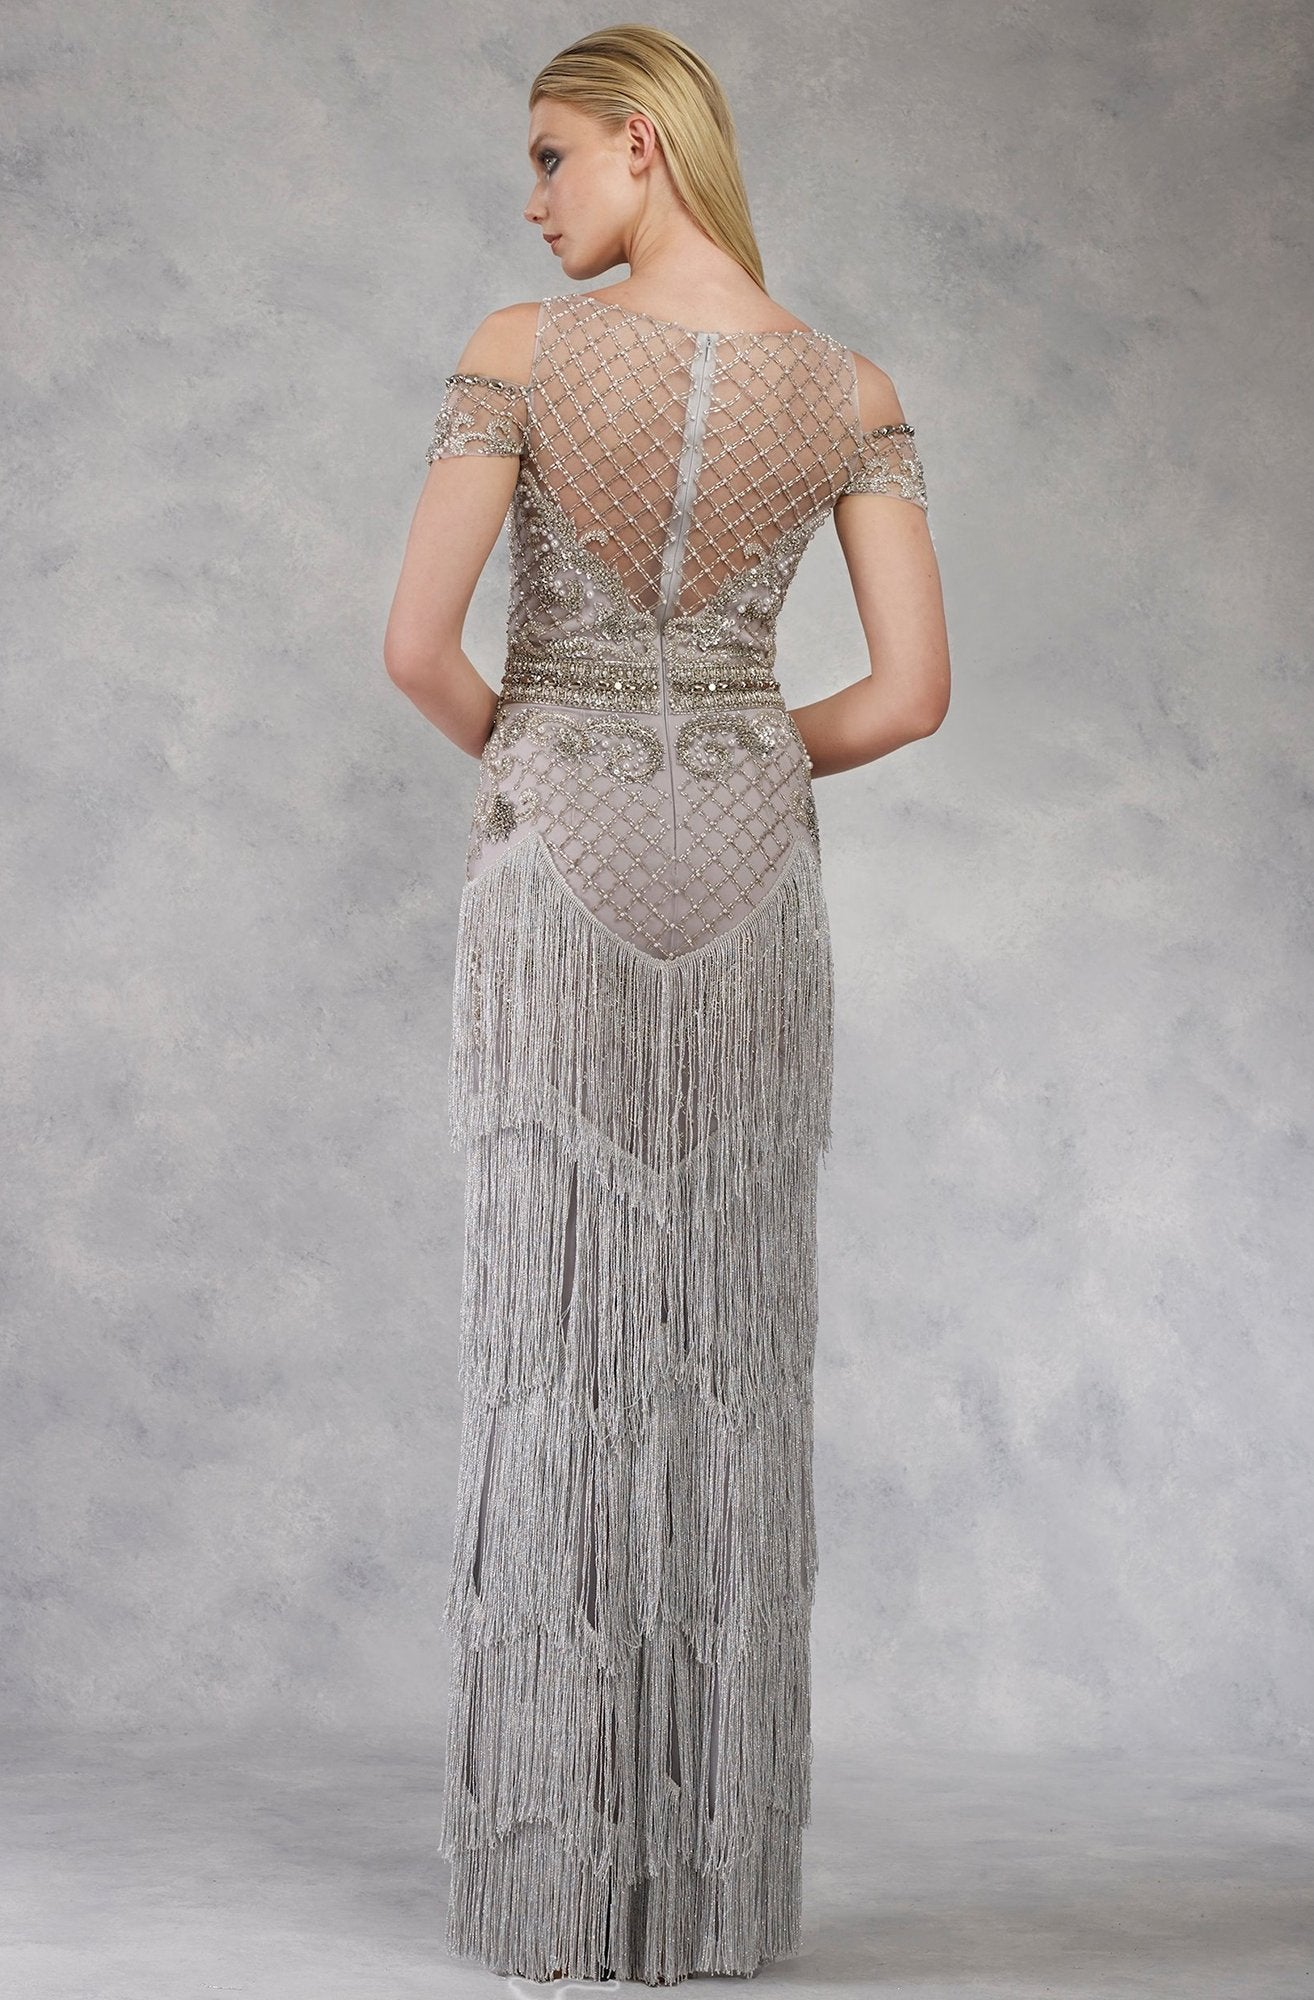 Janique - Lattice Beaded Illusion Bateau Fringe Gown W1683 In Silver and Gray